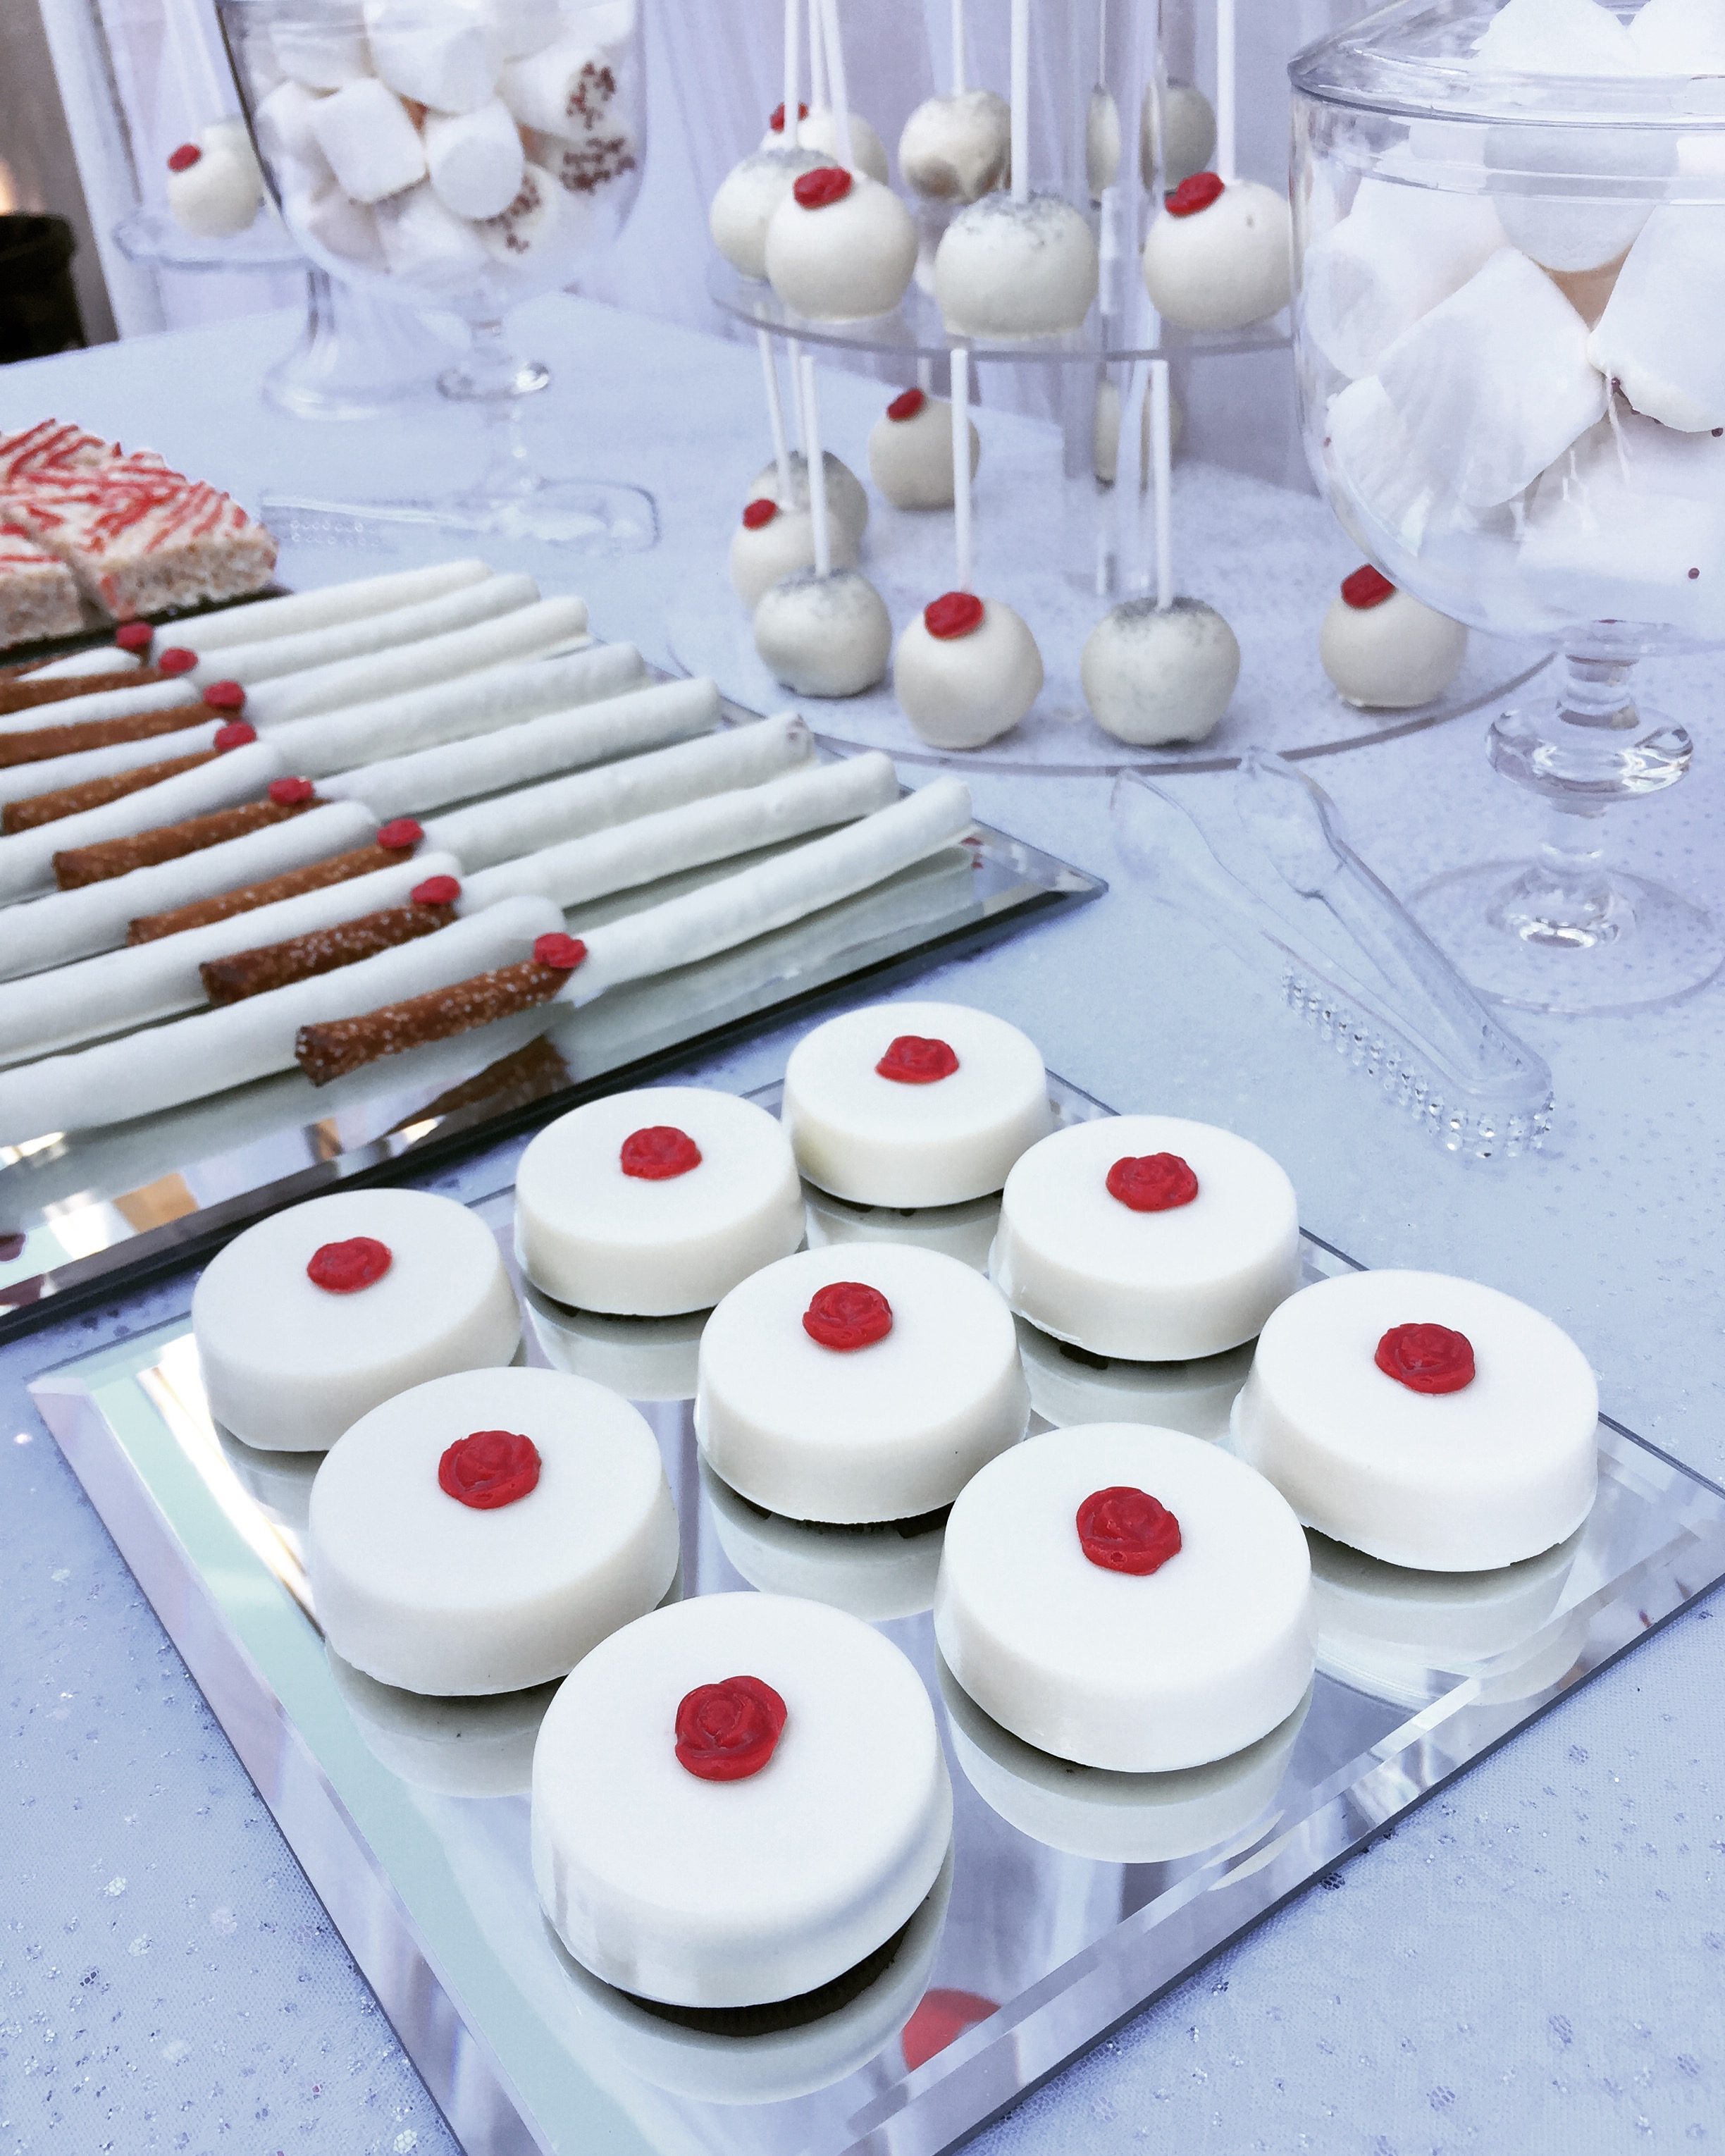 All white desserts w/ red roses